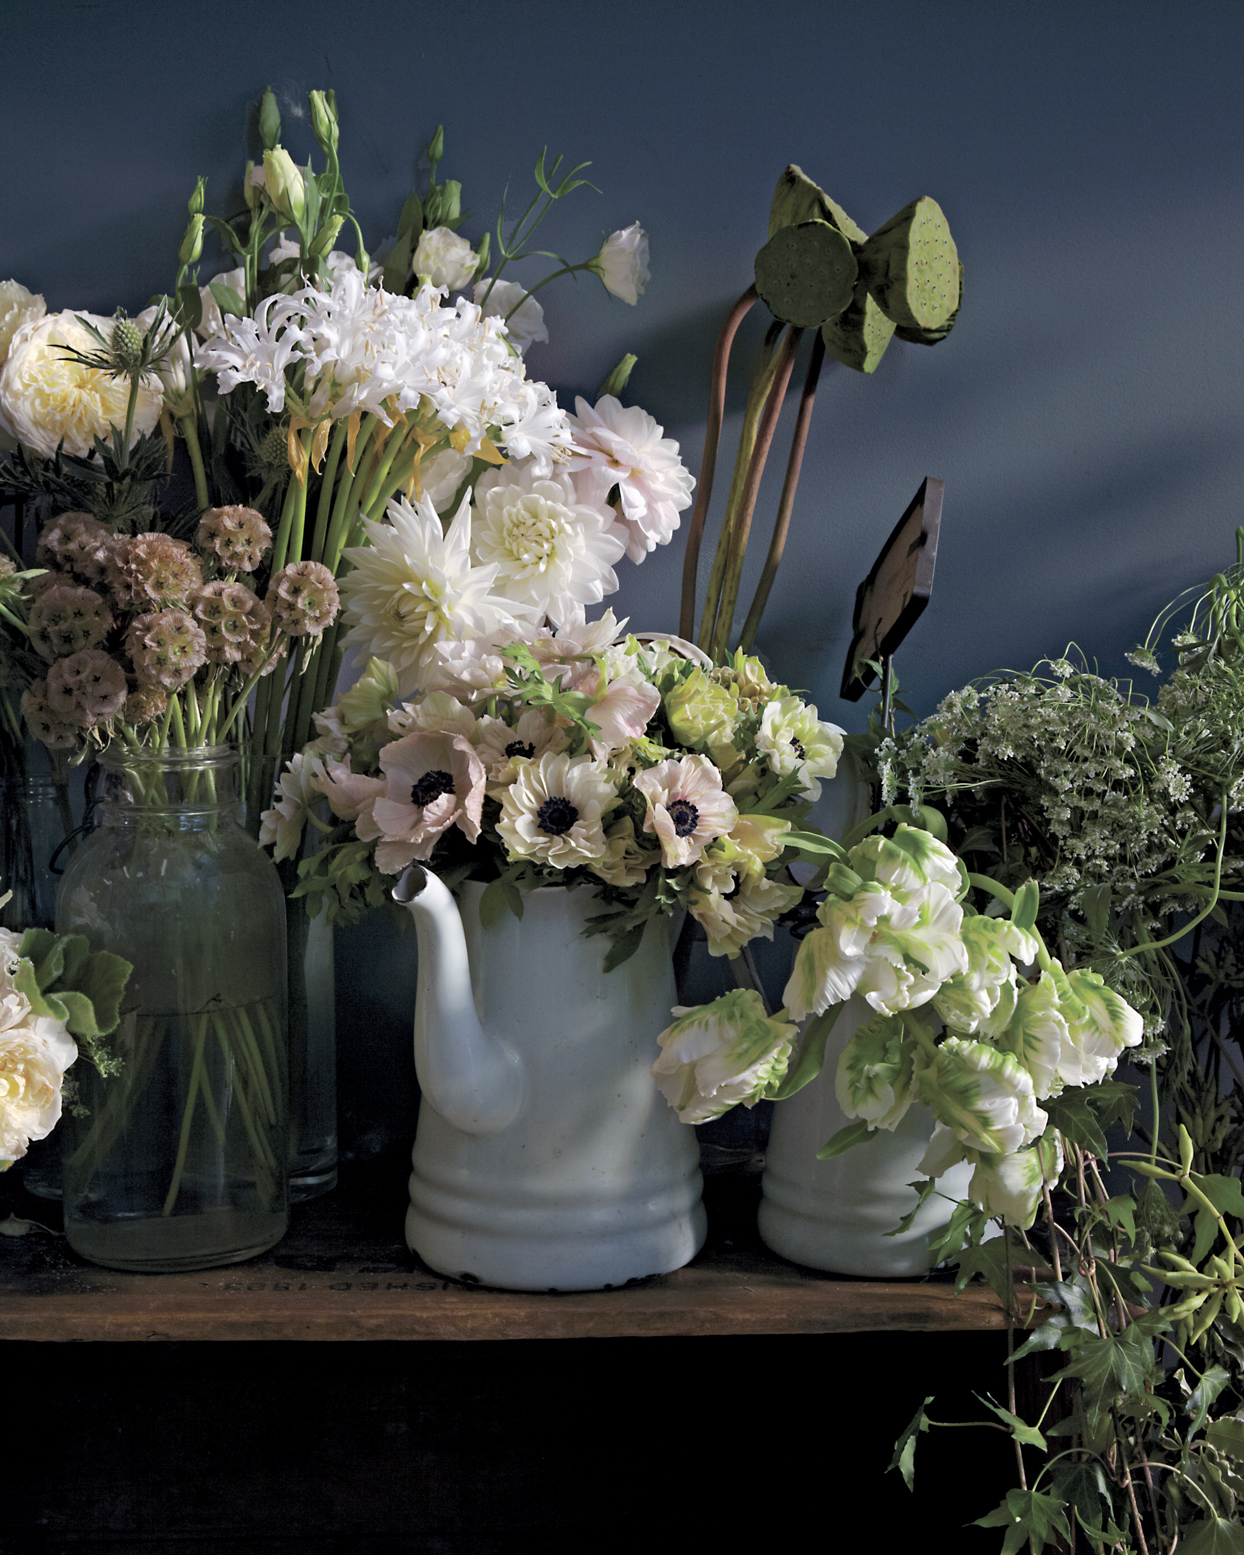 12 Flowers That Would Make Eerily Beautiful Additions To Your Halloween D Eacute Cor Martha Stewart